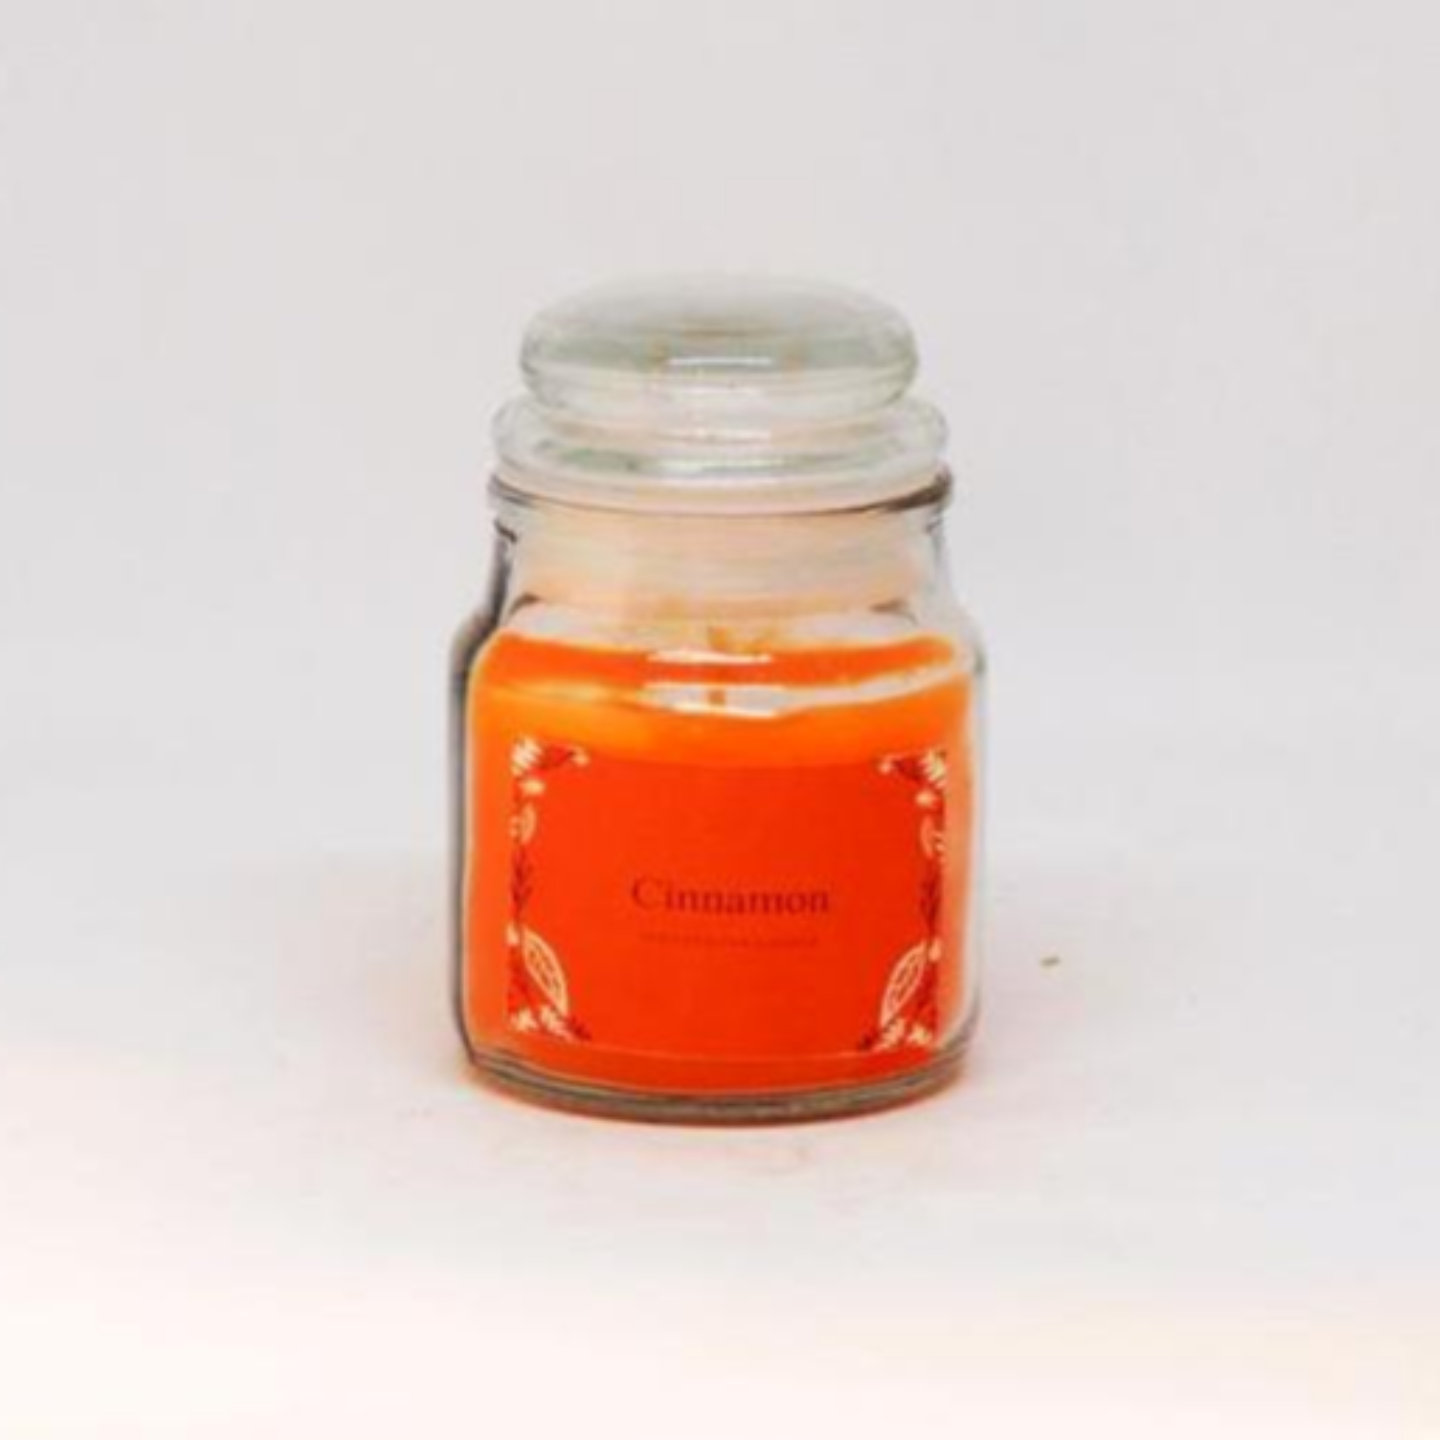 Scented Jar Candle - Cinnamon